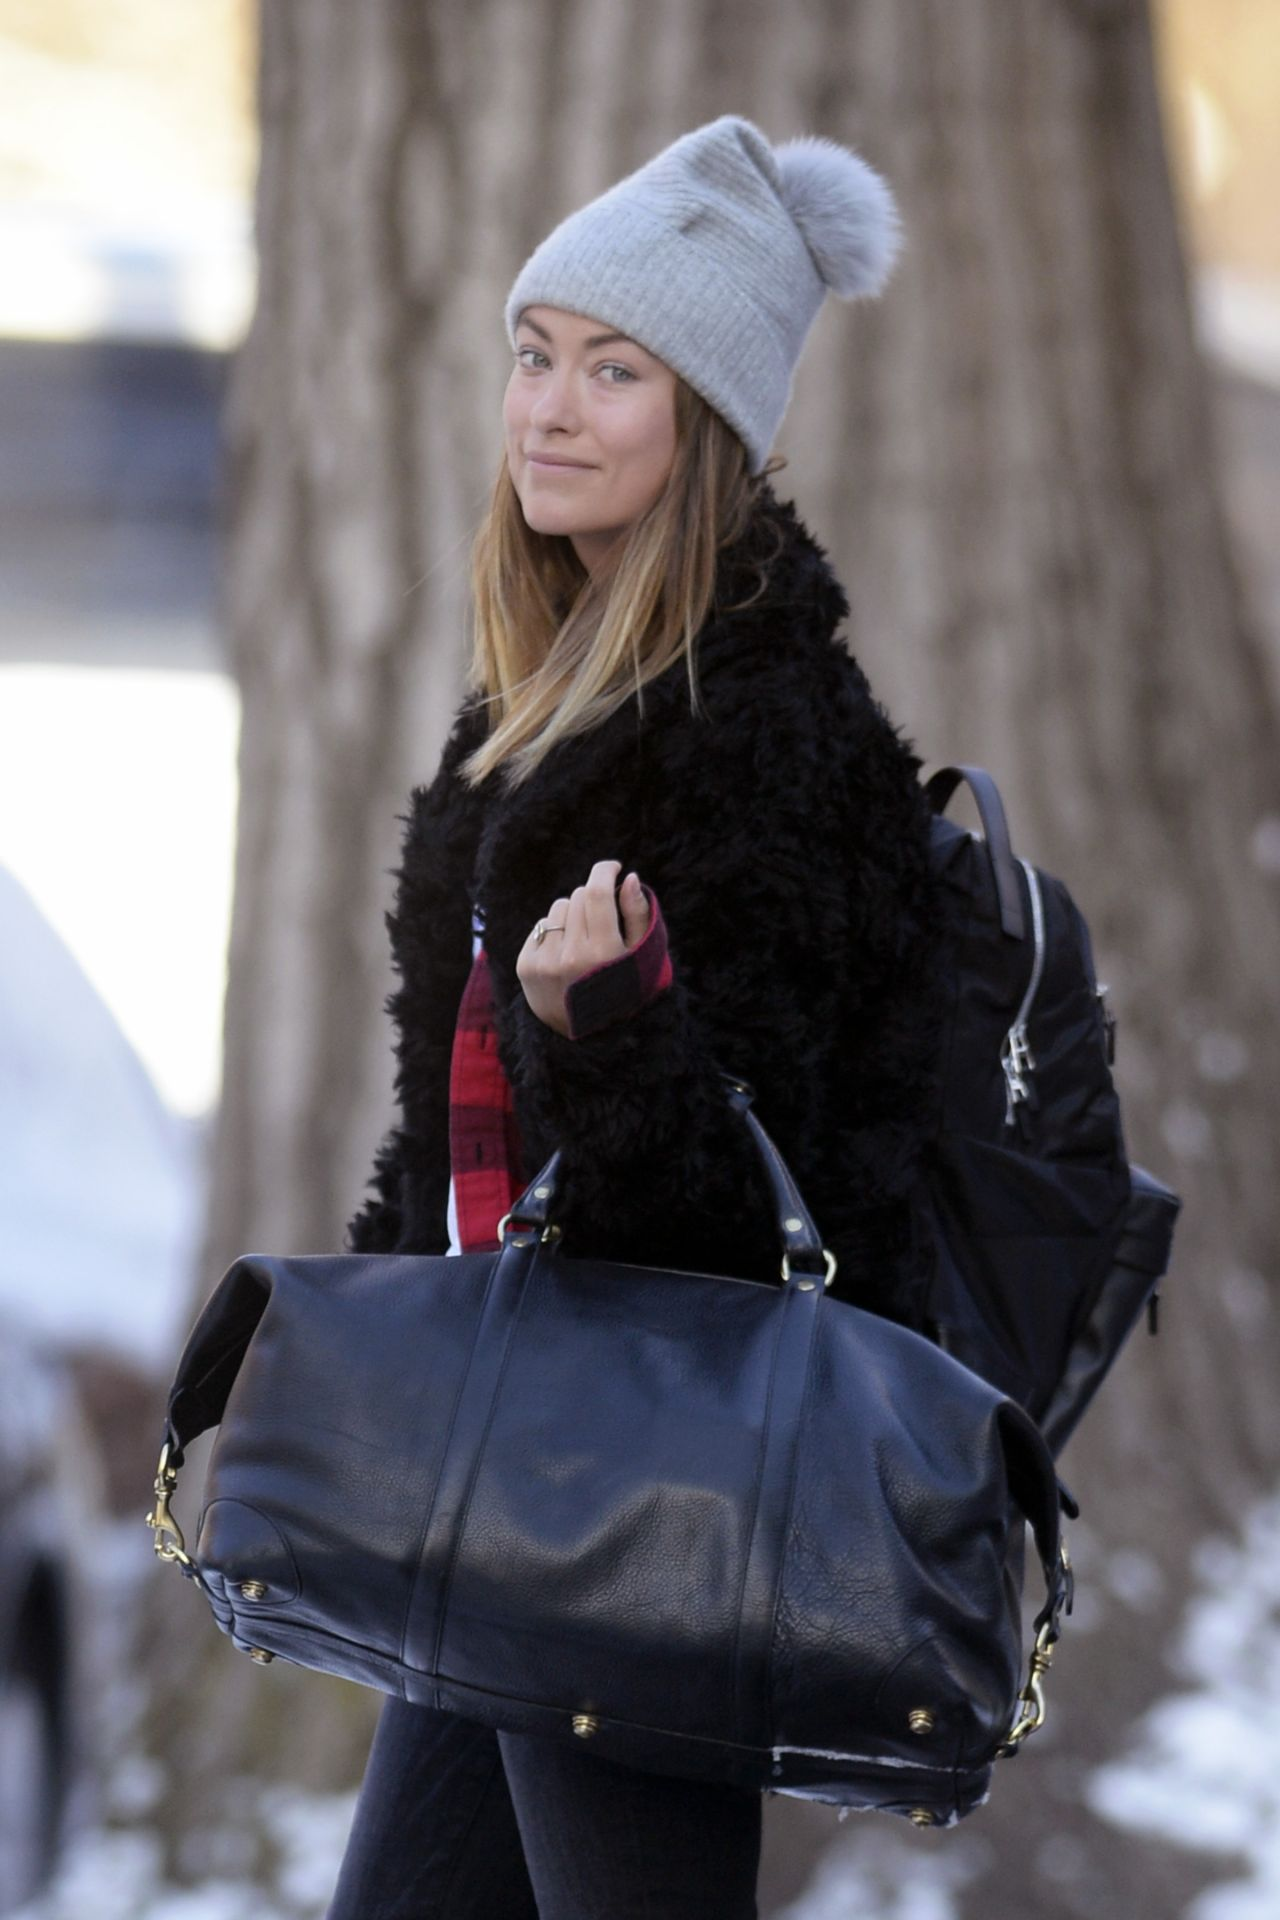 Forum on this topic: Emmy Rossum Shameless S7, Ep5 HD, olivia-wilde-leaving-her-hotel-in-nyc/